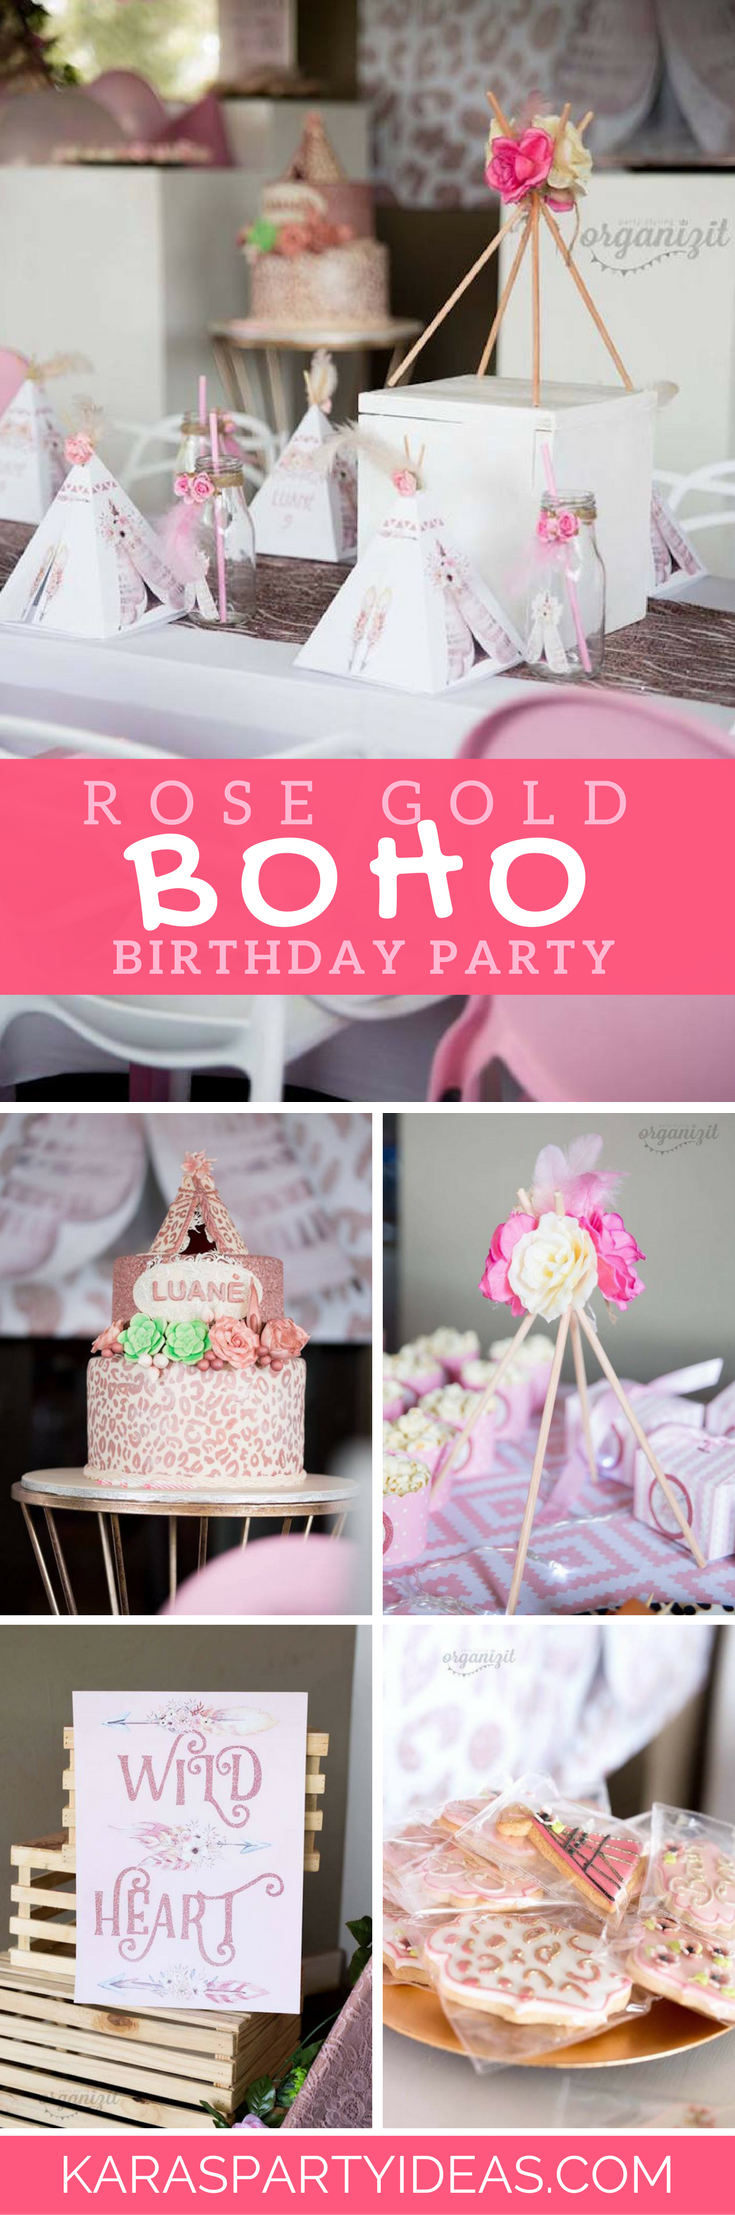 Kara S Party Ideas Rose Gold Boho Birthday Party Kara S